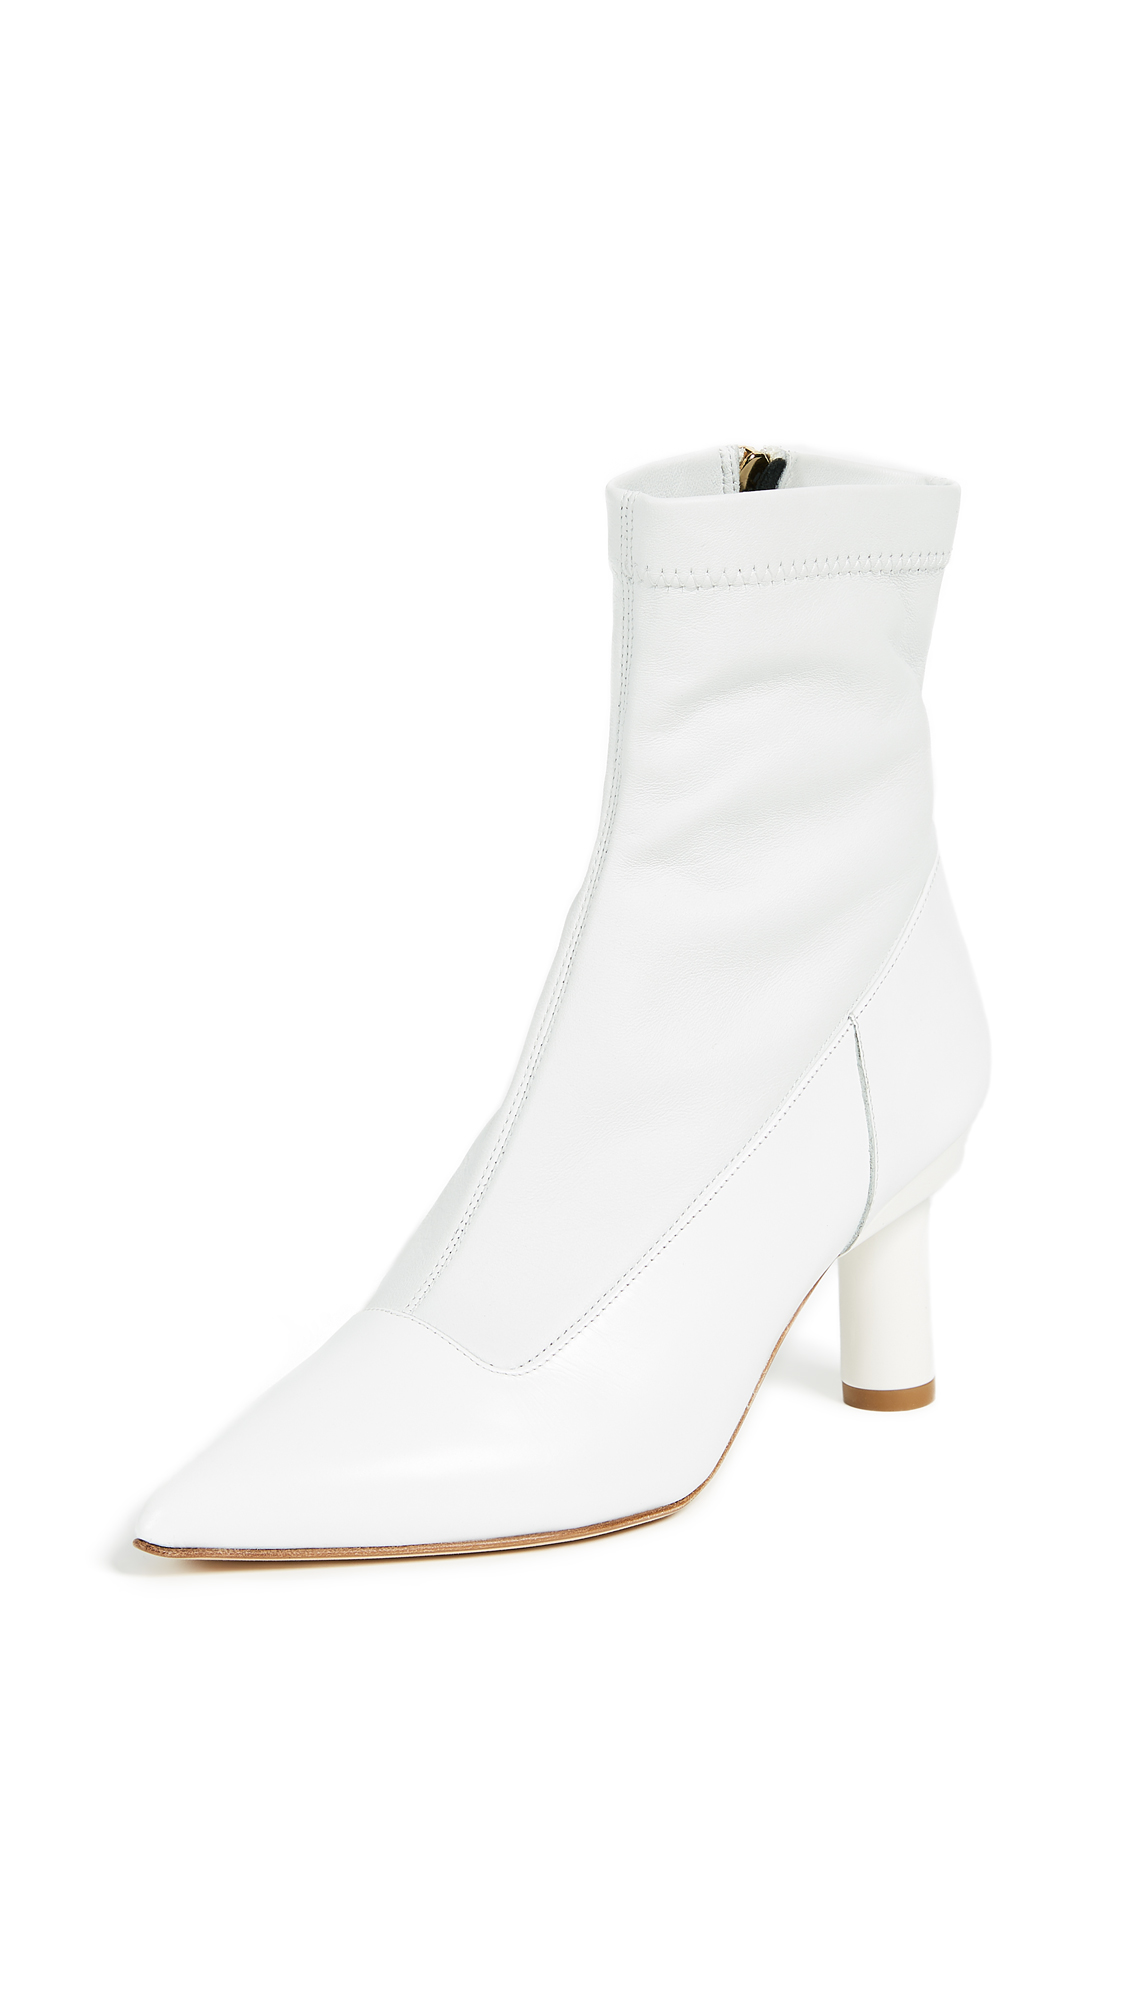 Tibi Ethan Booties - Bright White